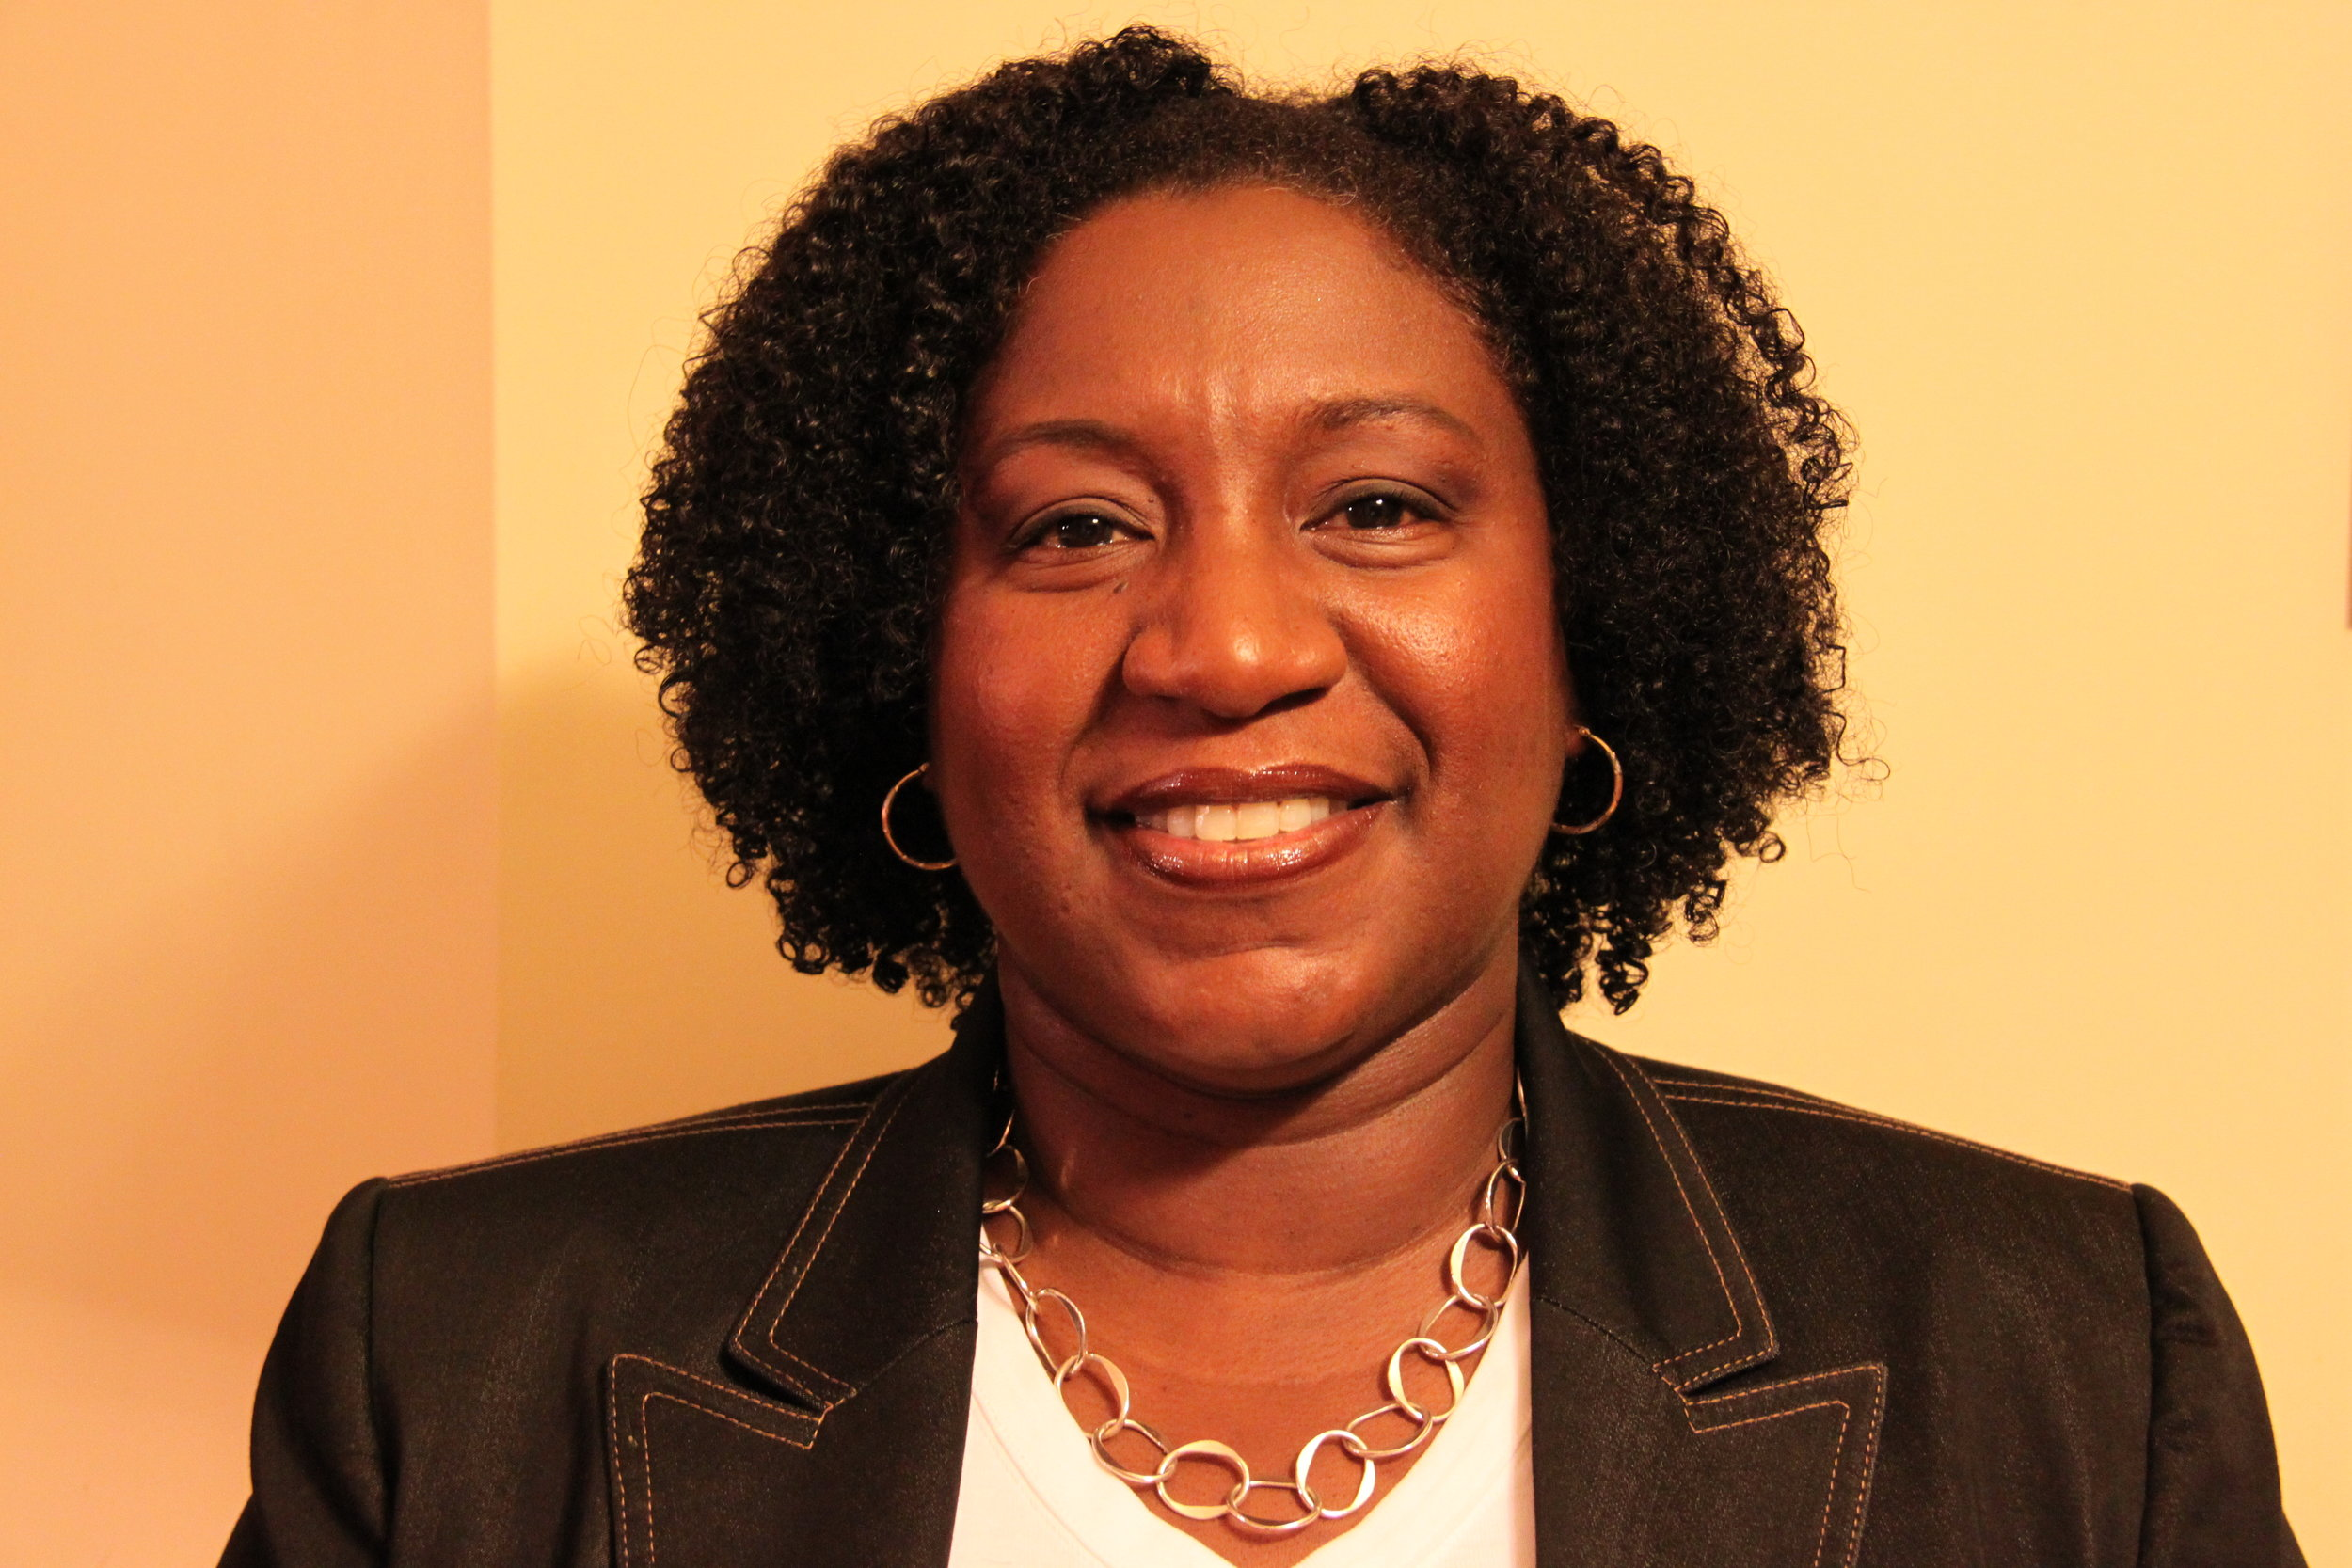 Kesha Baptiste-Roberts, PhD, MPH - Kesha Baptiste-Roberts, PhD, MPH is an Assistant Professor in the Department of Public Health Analysis at the Morgan State University School of Community Health & Policy. She is trained in epidemiology and has published research in the areas of women's health, maternal and child health, type 2 diabetes and obesity. Her current research efforts are focused health disparities among sexual minority women. Dr. Baptiste-Roberts has co-edited a book on Obesity in Pregnancy and has contributed book chapters to two books. Dr. Baptiste-Roberts is also actively engaged in the scholarship of teaching and learning and has been a leader in this area at her school. Dr. Baptiste-Roberts is an active member of the Epidemiology Section of the American Public Health Association (APHA) and is the current president (2016 -2018) of the Society of the Analysis of African American Public Health Issues (SAAPHI).